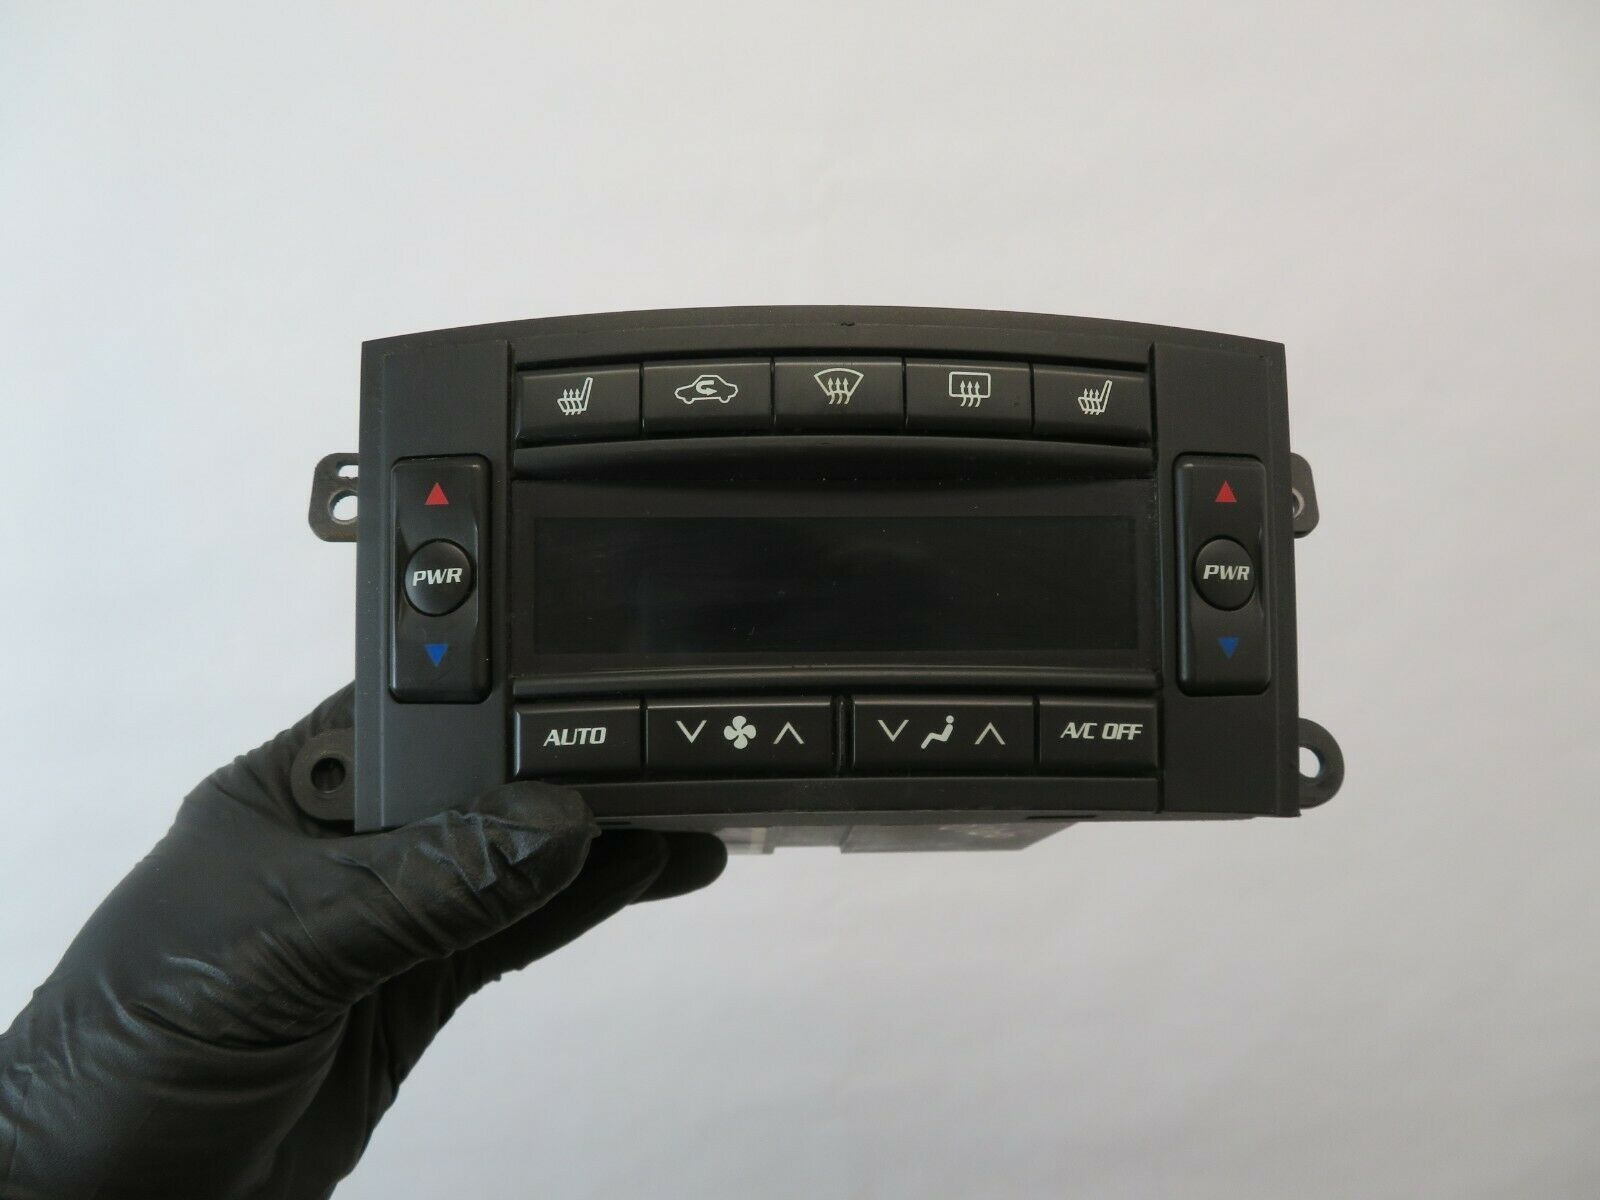 #3713A CADILLAC CTS 03 04 05 06 07 DASH TEMP AC HEAT AIR CLIMATE CONTROL SWITCH - $14.00